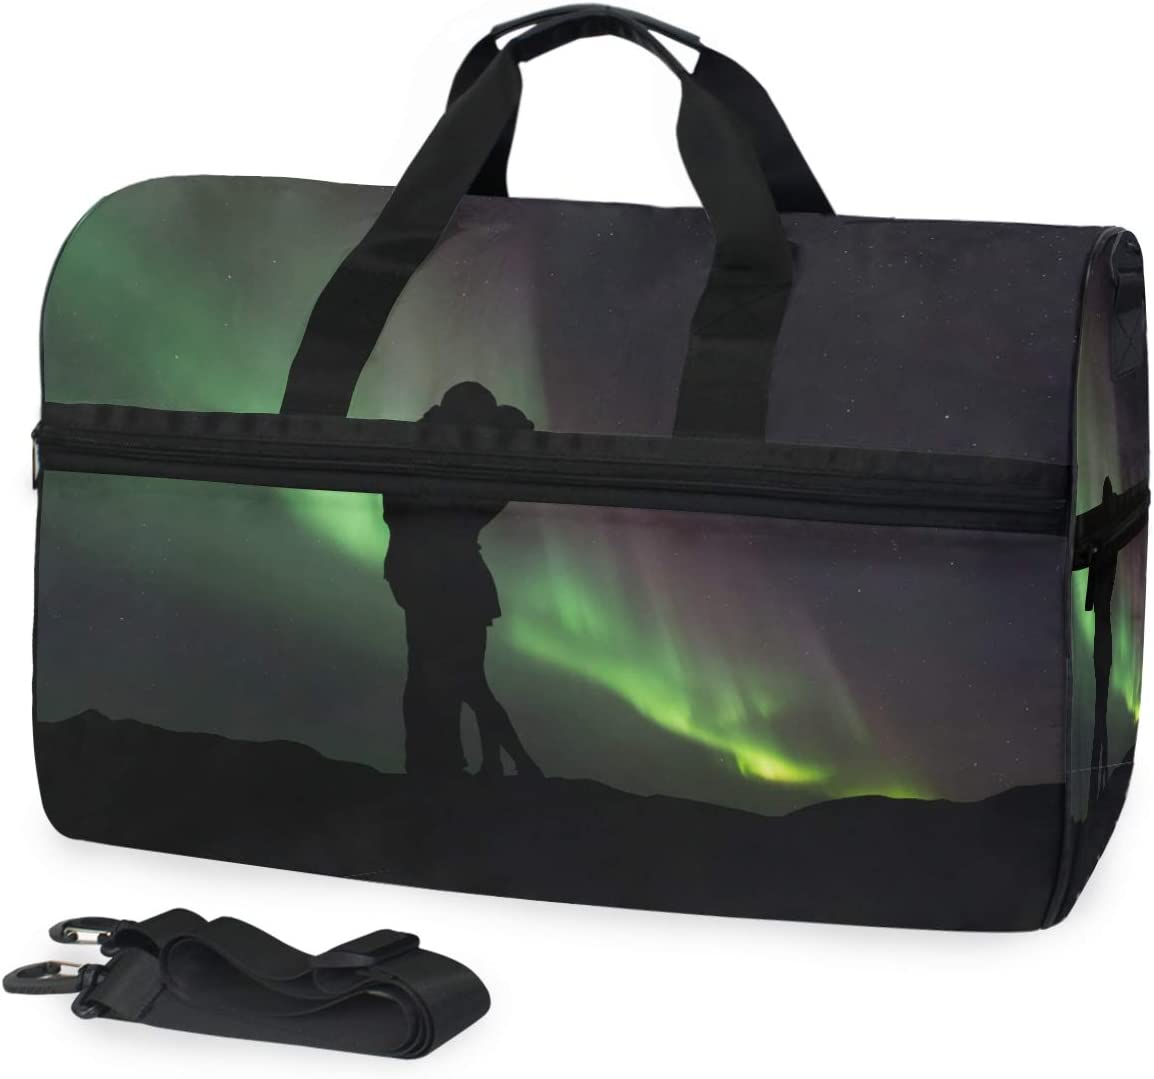 MUOOUM Green Aurora Love Couple Silhouette Large Duffle Bags Sports Gym Bag with Shoes Compartment for Men and Women